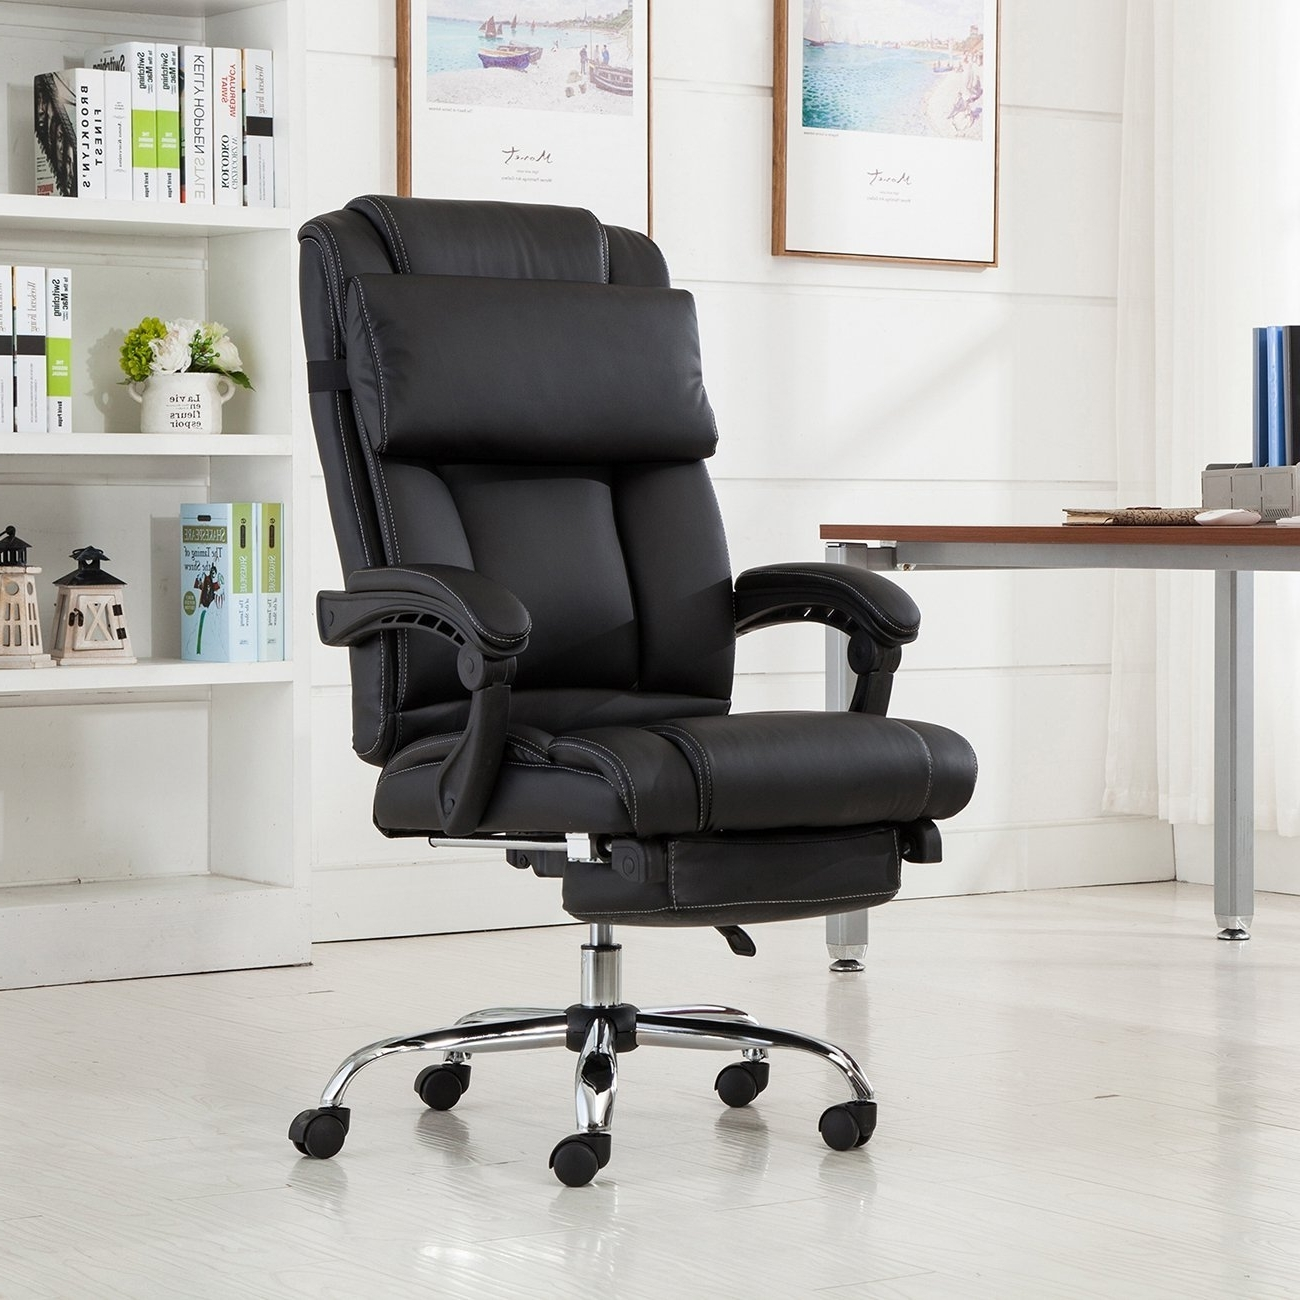 Widely Used Top 10 Reclining Office Chairs Reviewed (View 19 of 20)